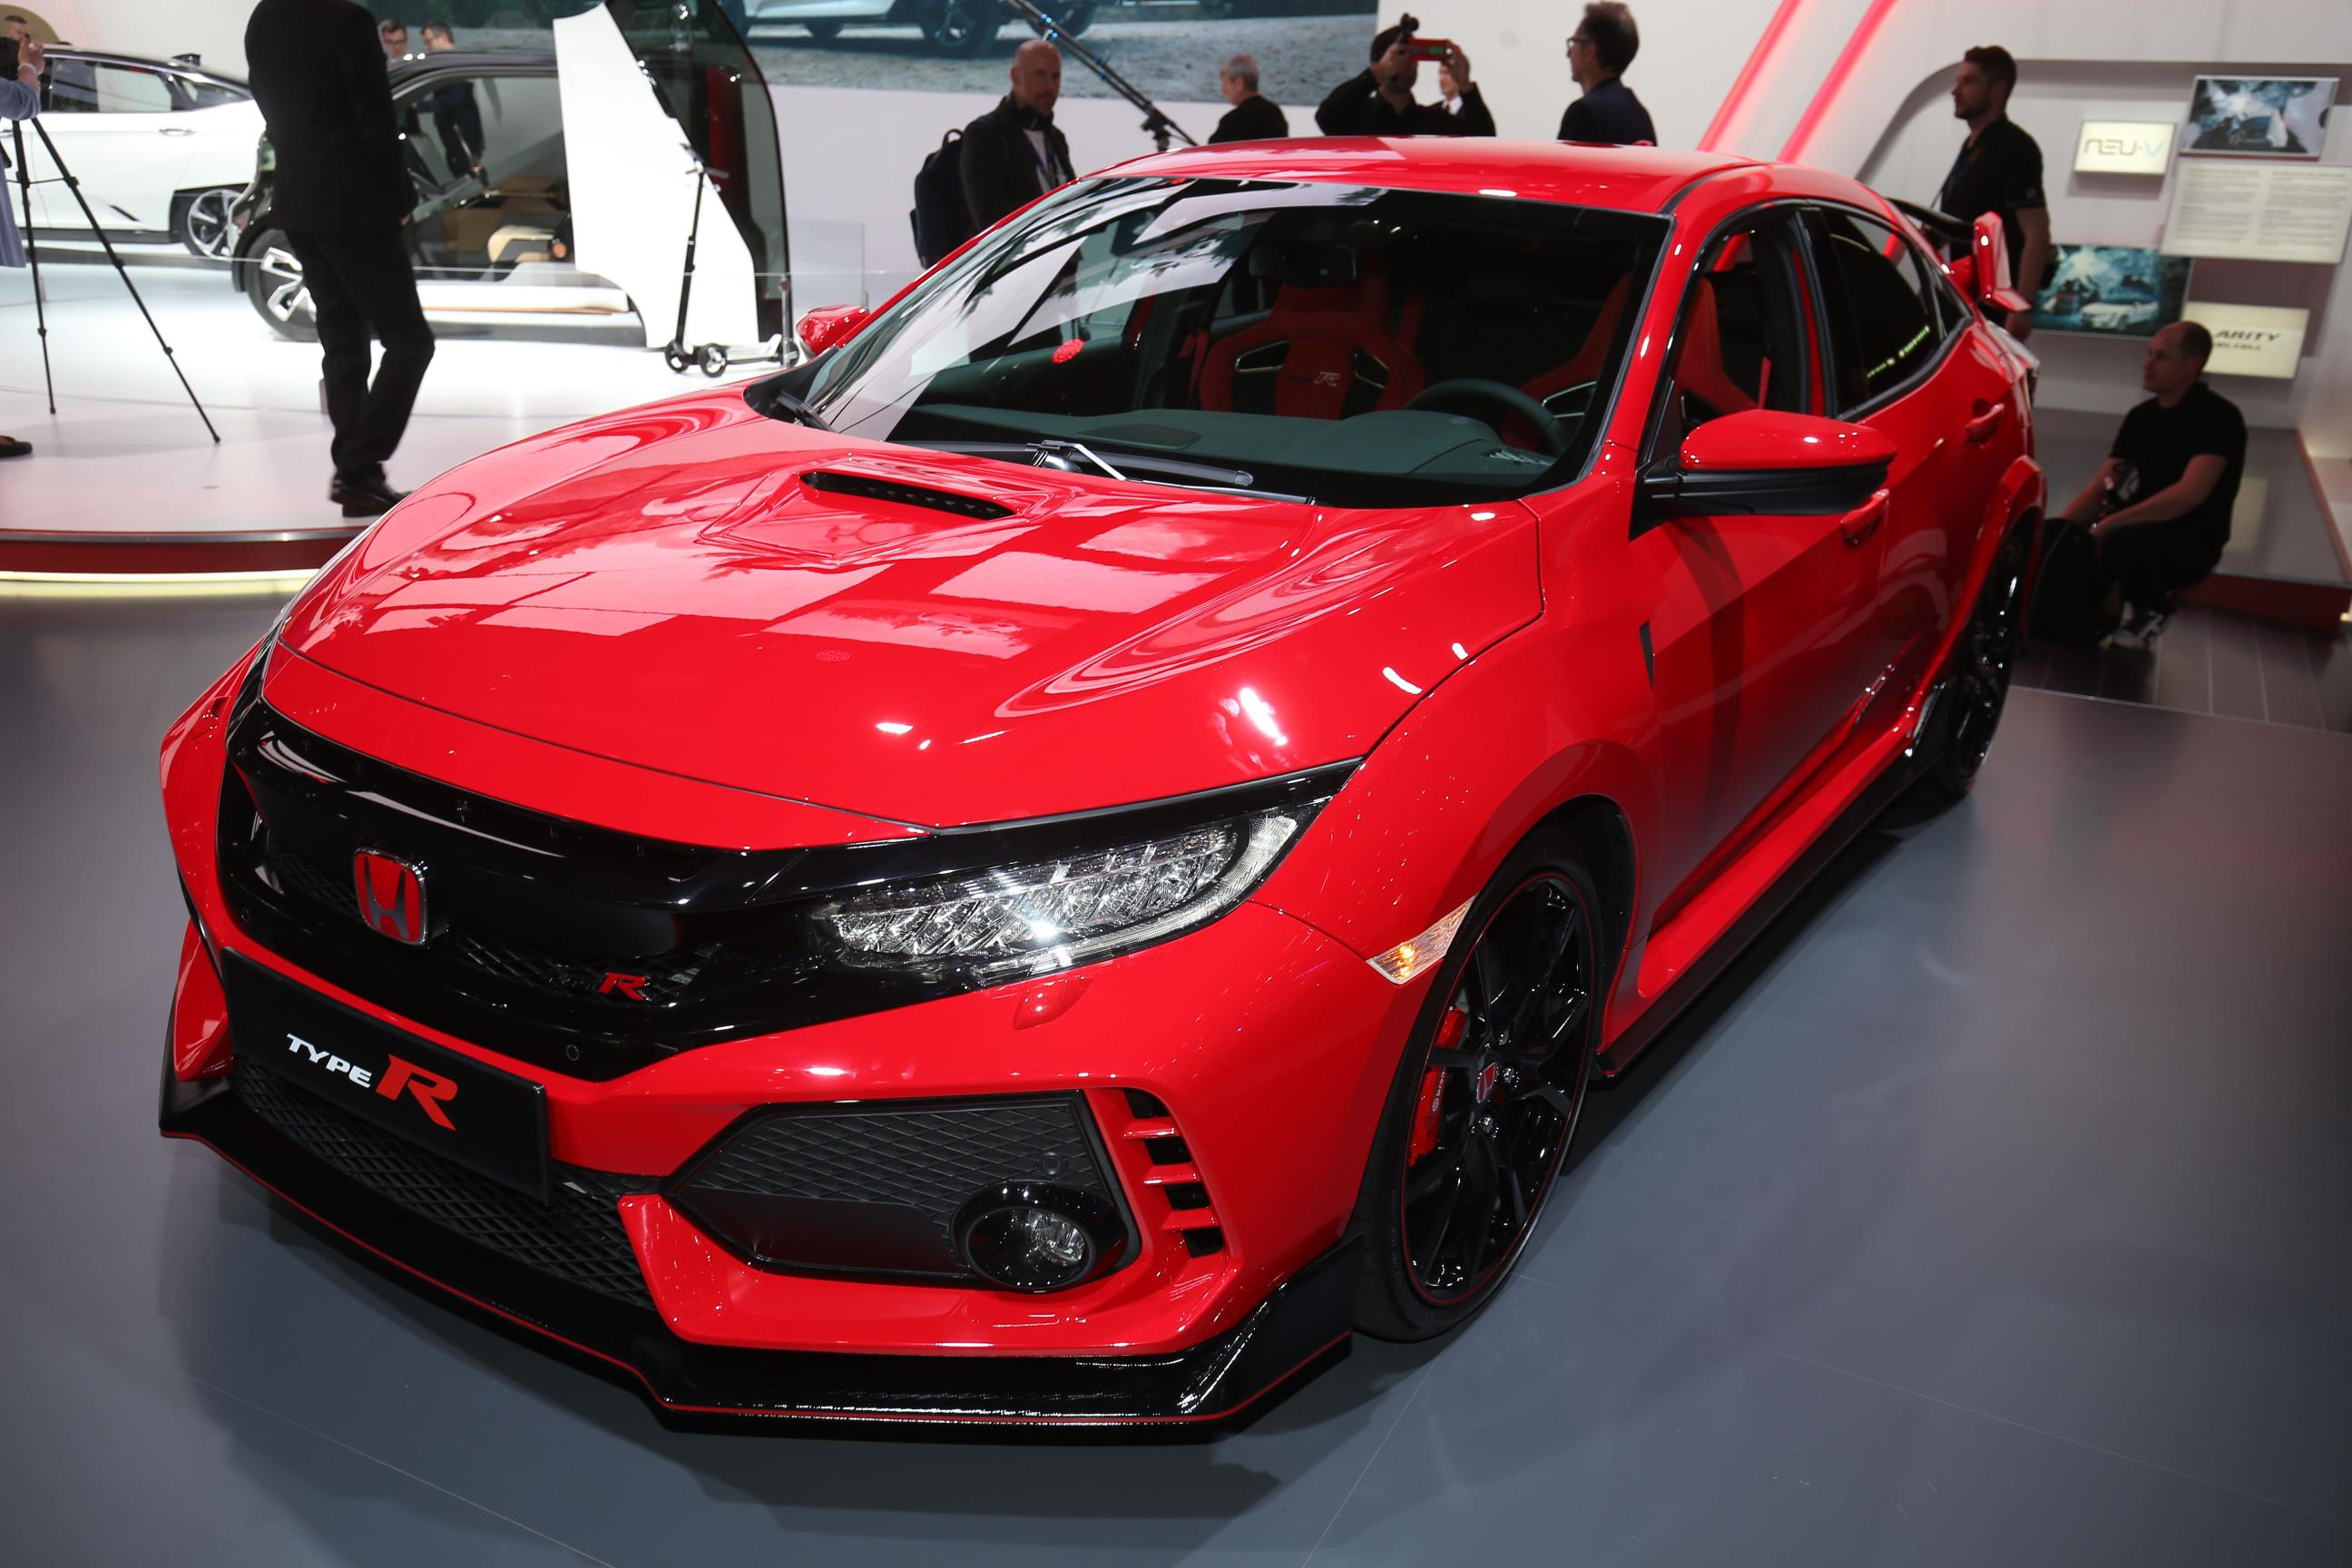 2018 Honda Civic Type R Makes Production Debut In Geneva Packs 320 Hp Autoevolution